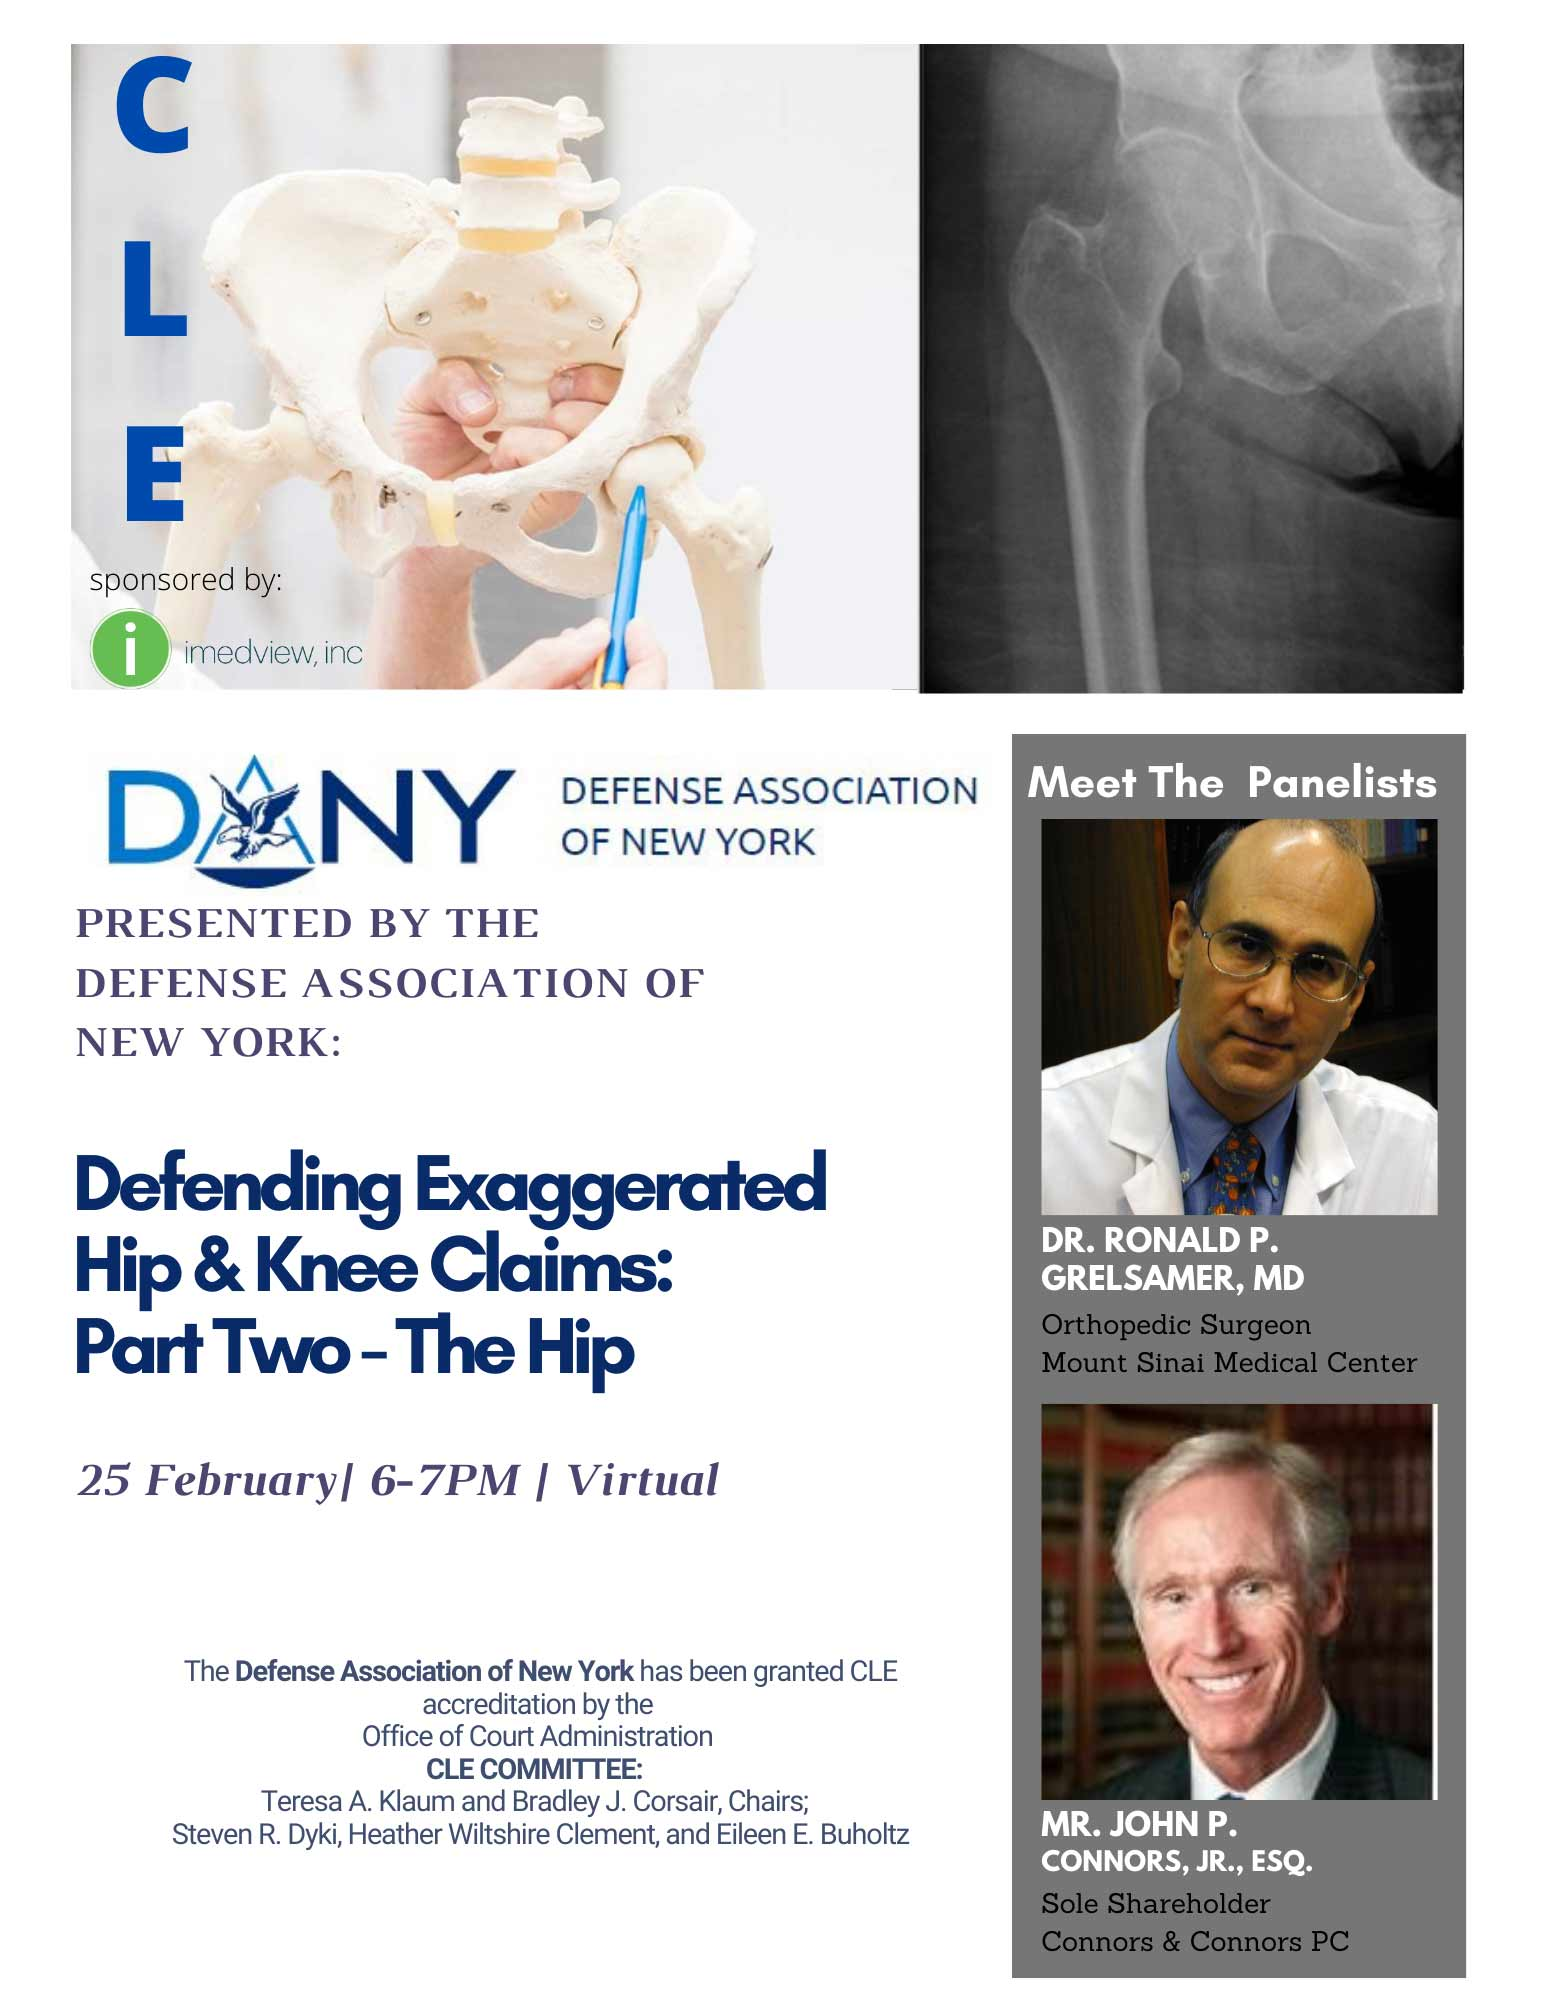 DANY Defending Exaggerated Hip & Knee Claims- Part Two - The Hip, 25 February _ 6-7pm _ Virtual